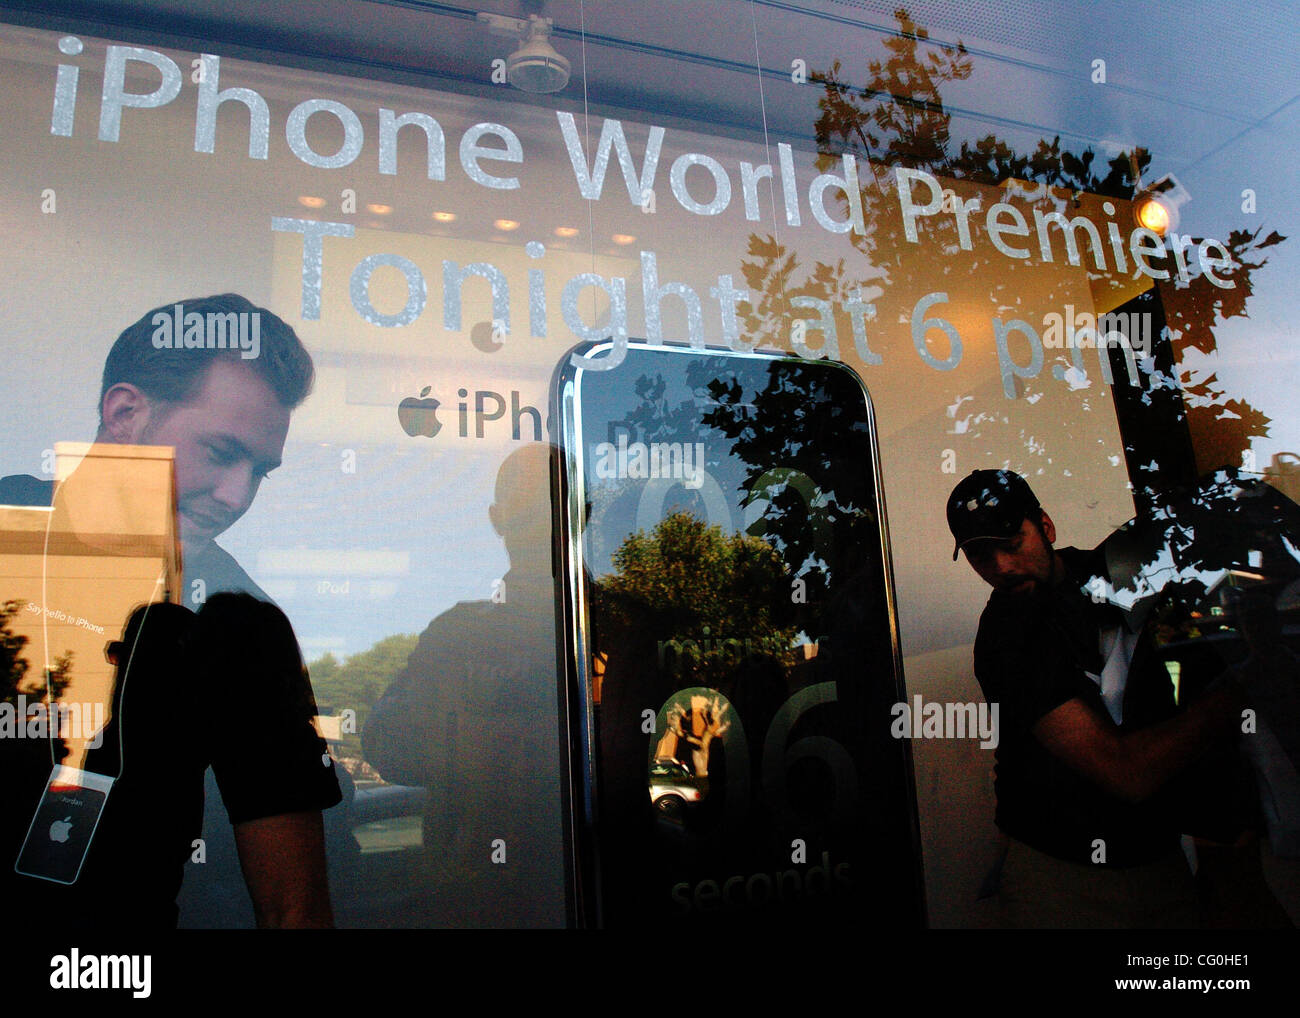 Just before 6:00pm, Apple employees open up shop during the launch of the iPhone at the Apple store in Walnut Creek, - Stock Image